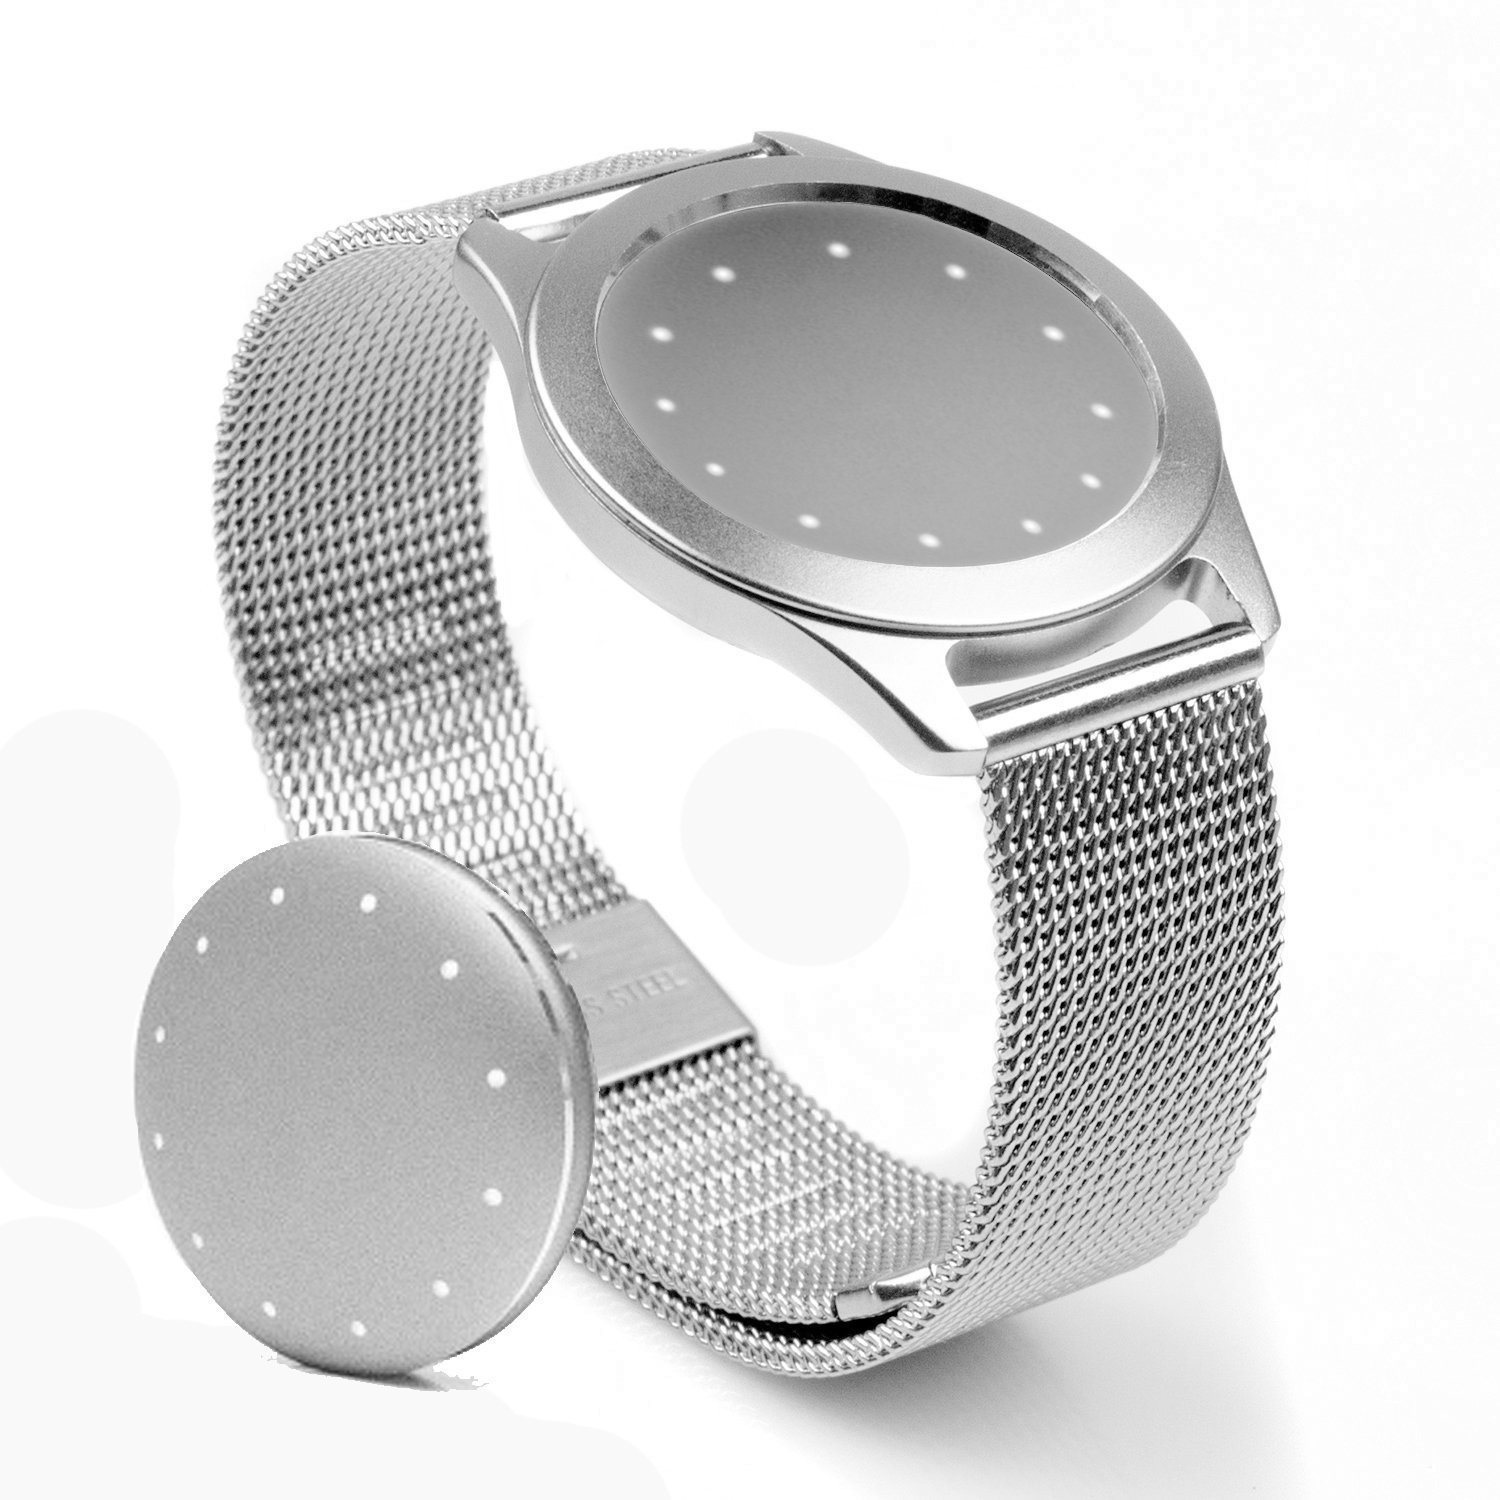 Misfit Shine Band Probrother® Milanese Strap Original with Buckle for Activity and Sleep Monitor Misfit Shine Watchbands Smart Watch Watchbands Silver